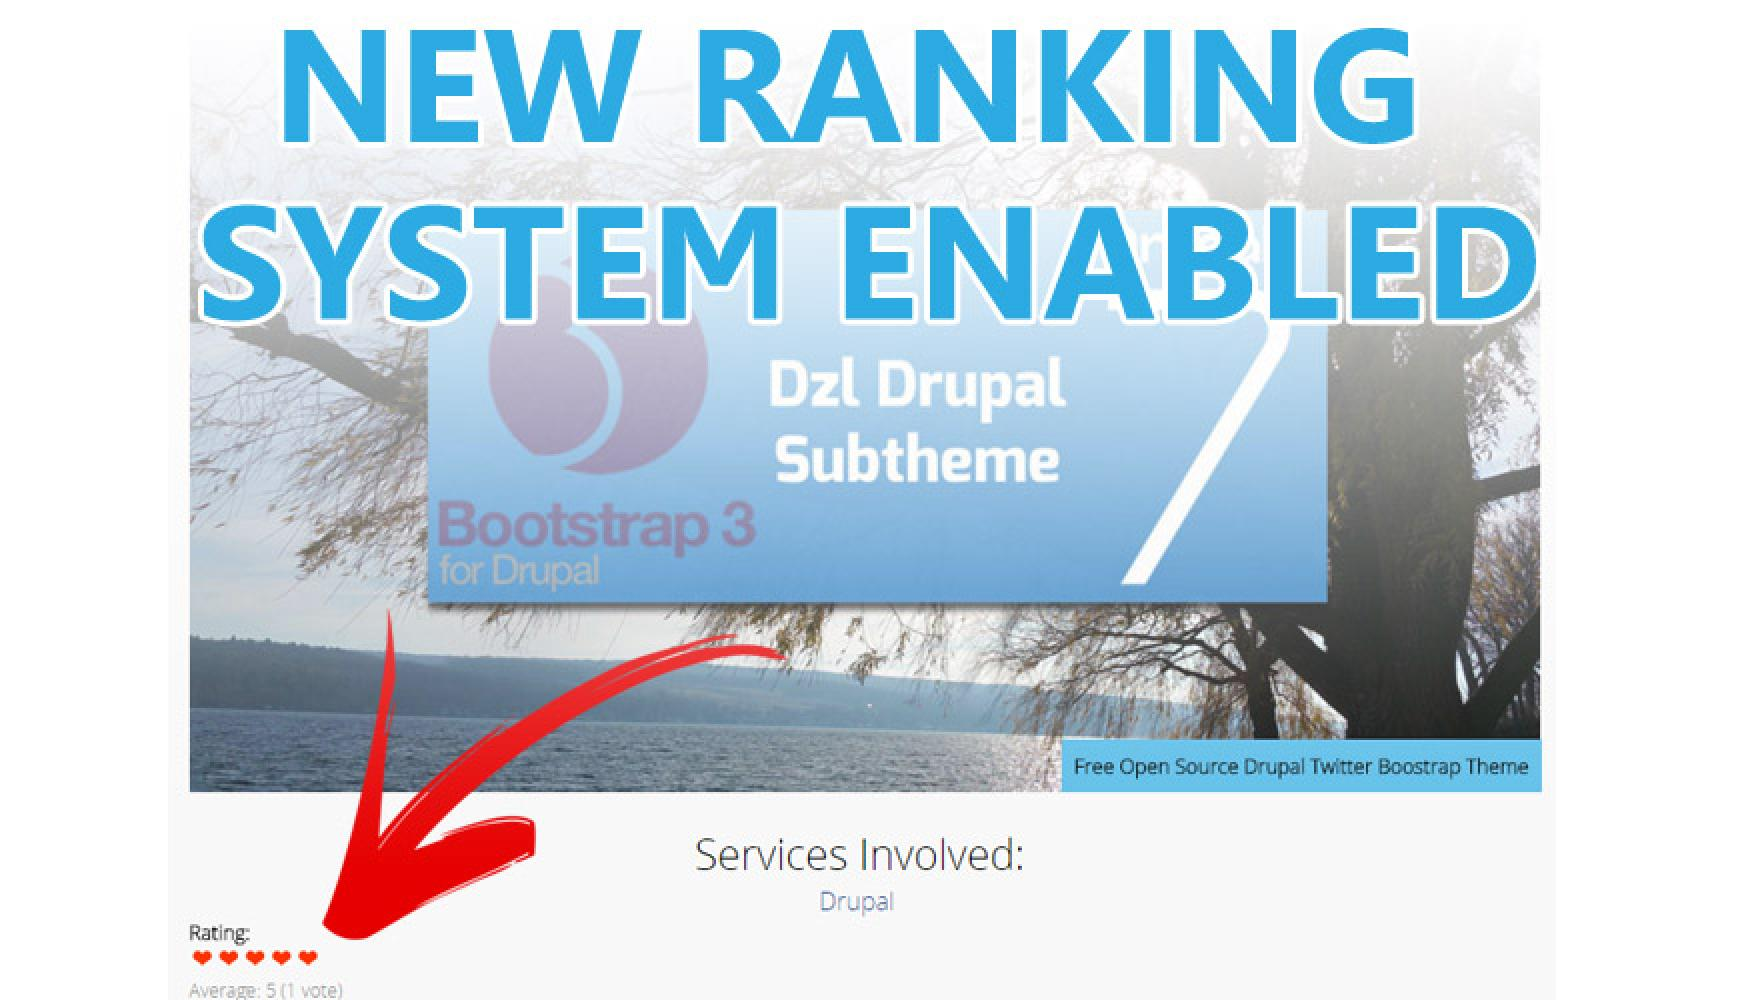 New Ranking System Enabled